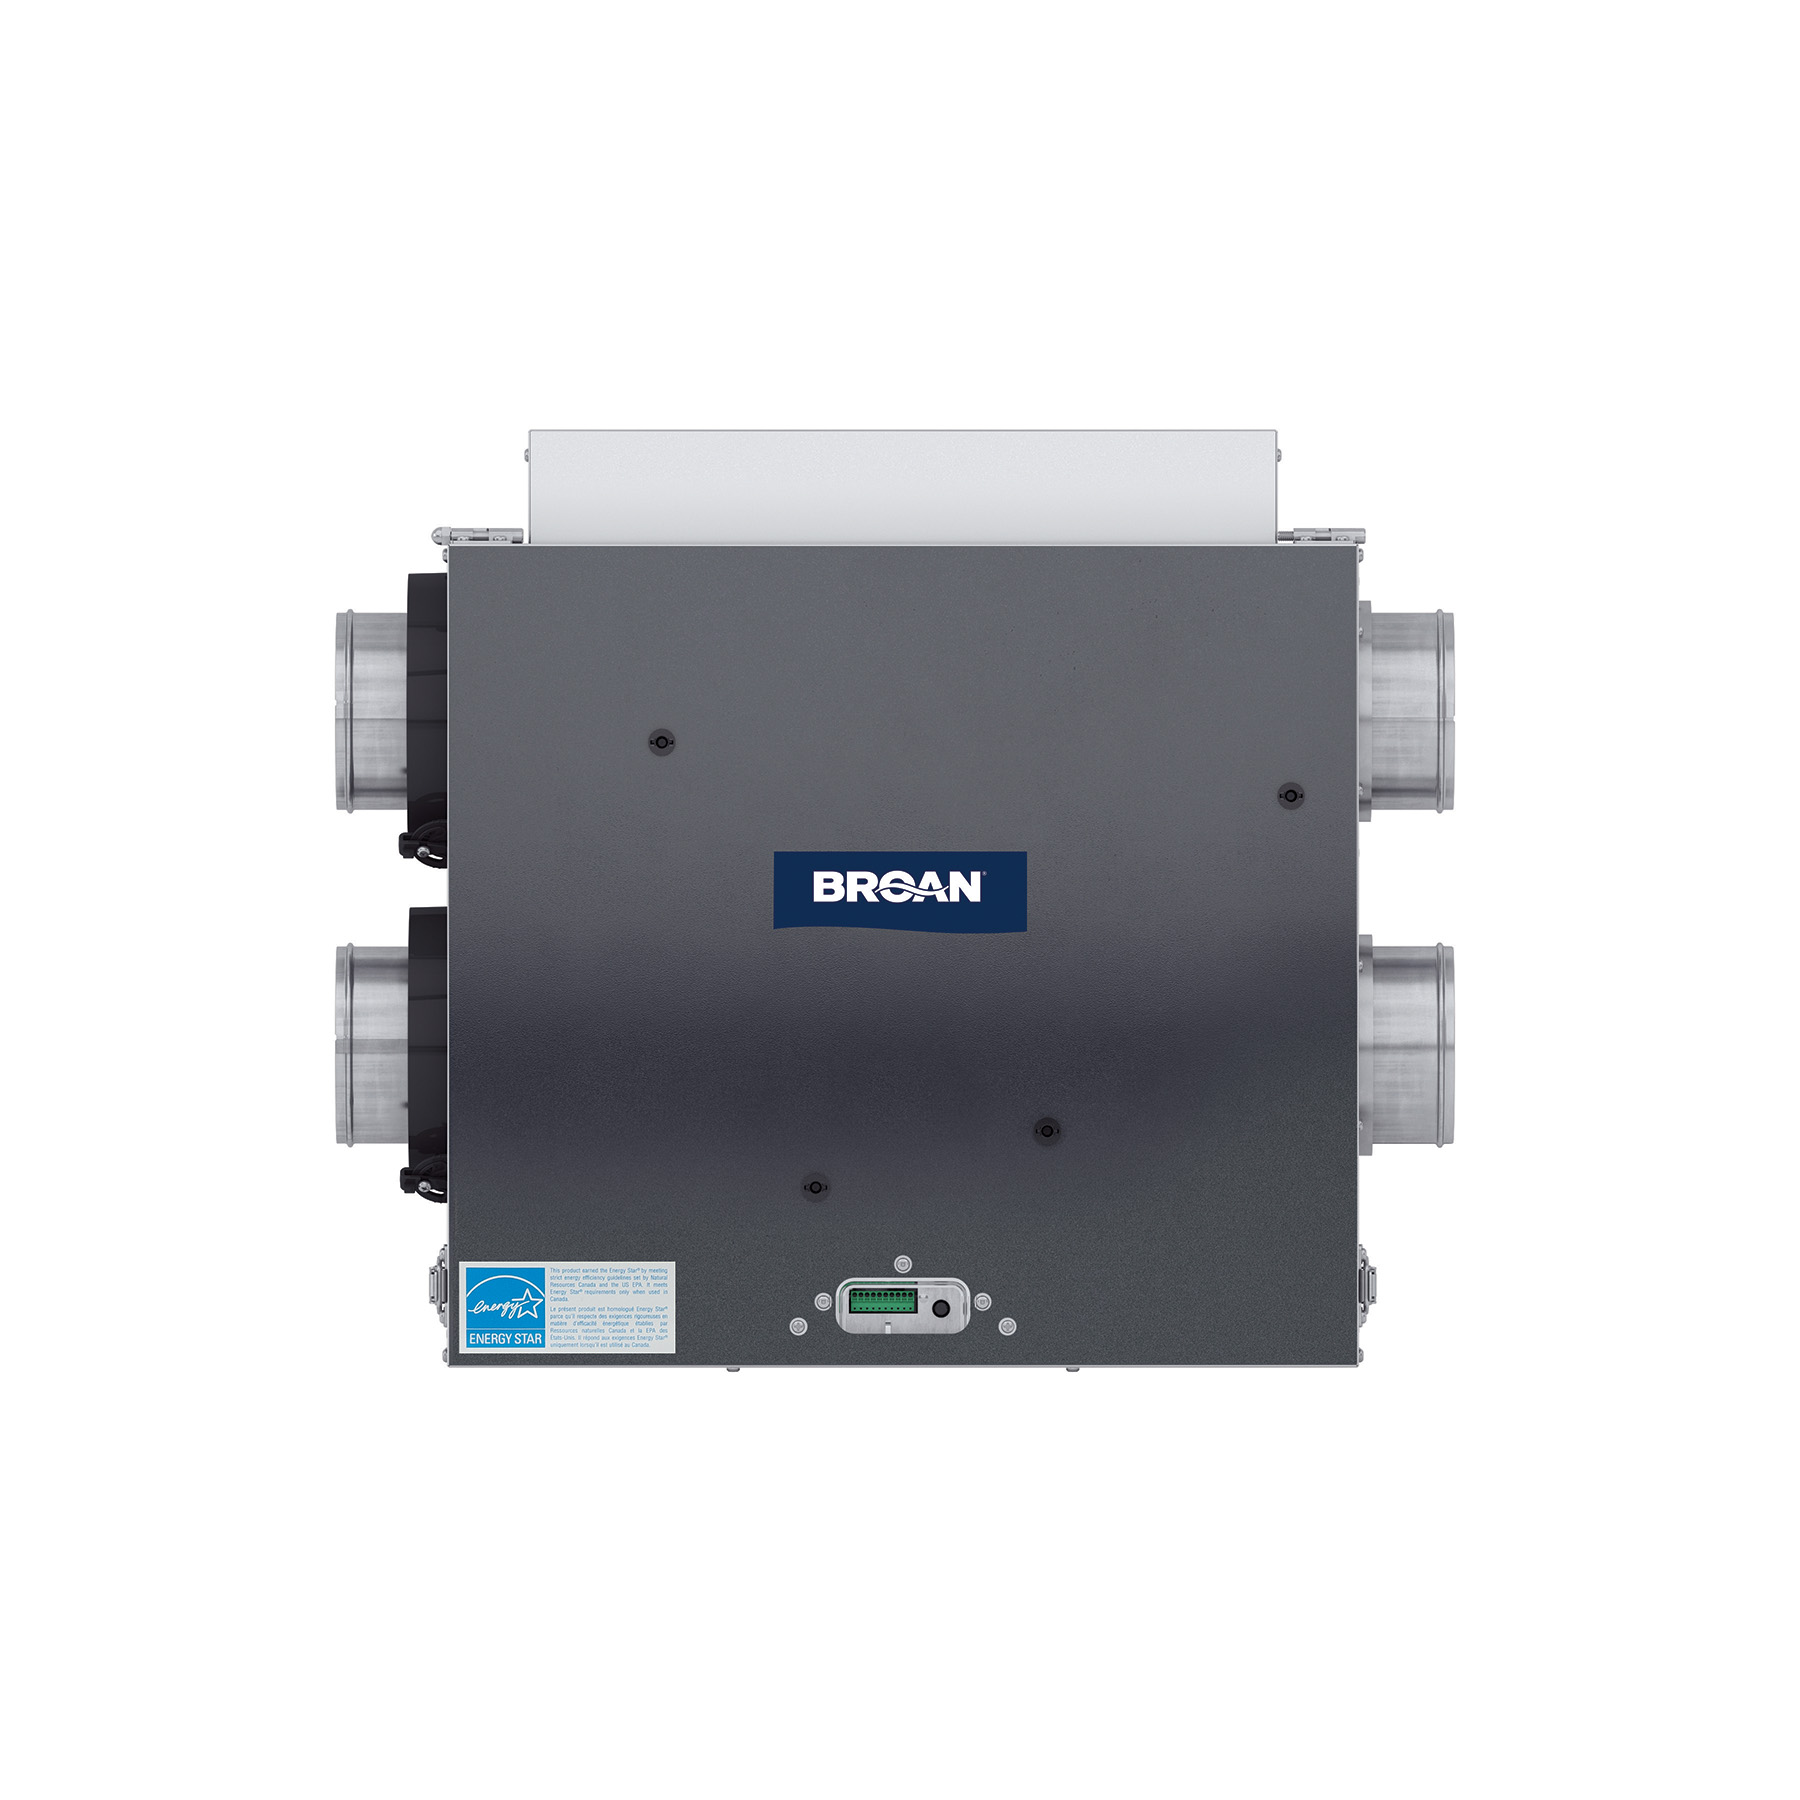 Broan® Energy Recovery Ventilator for high-rise residential towers and southern regions